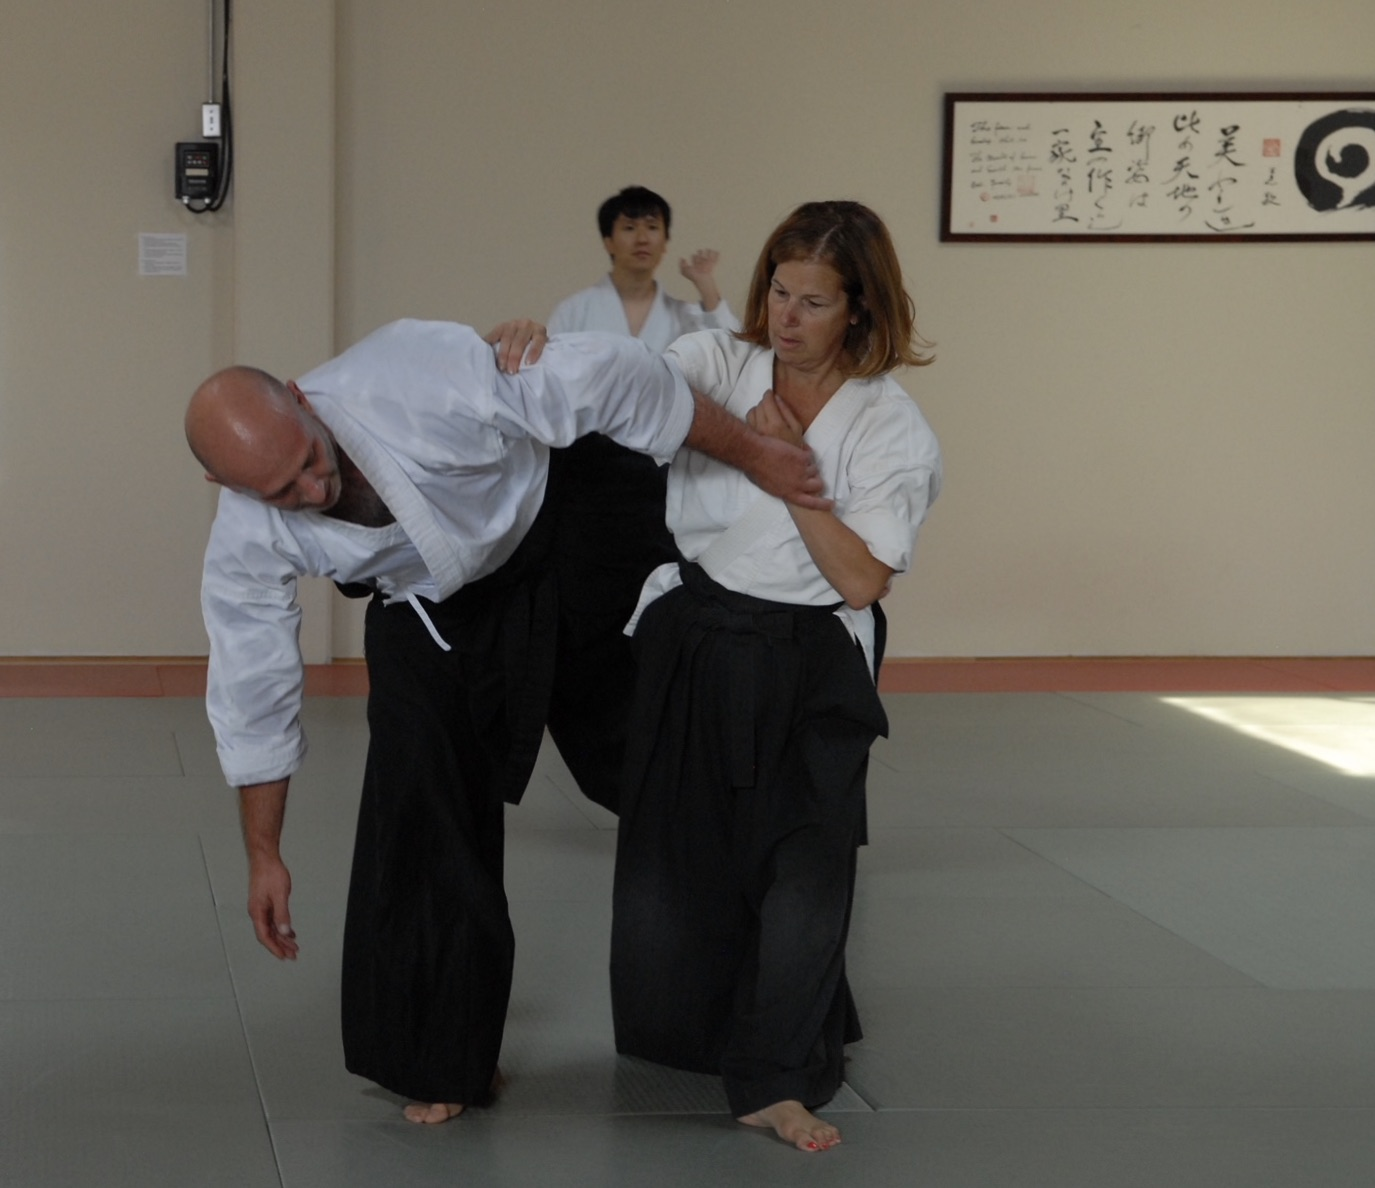 Penny Nelson demonstrates proper form at her dojo, Aikido West.